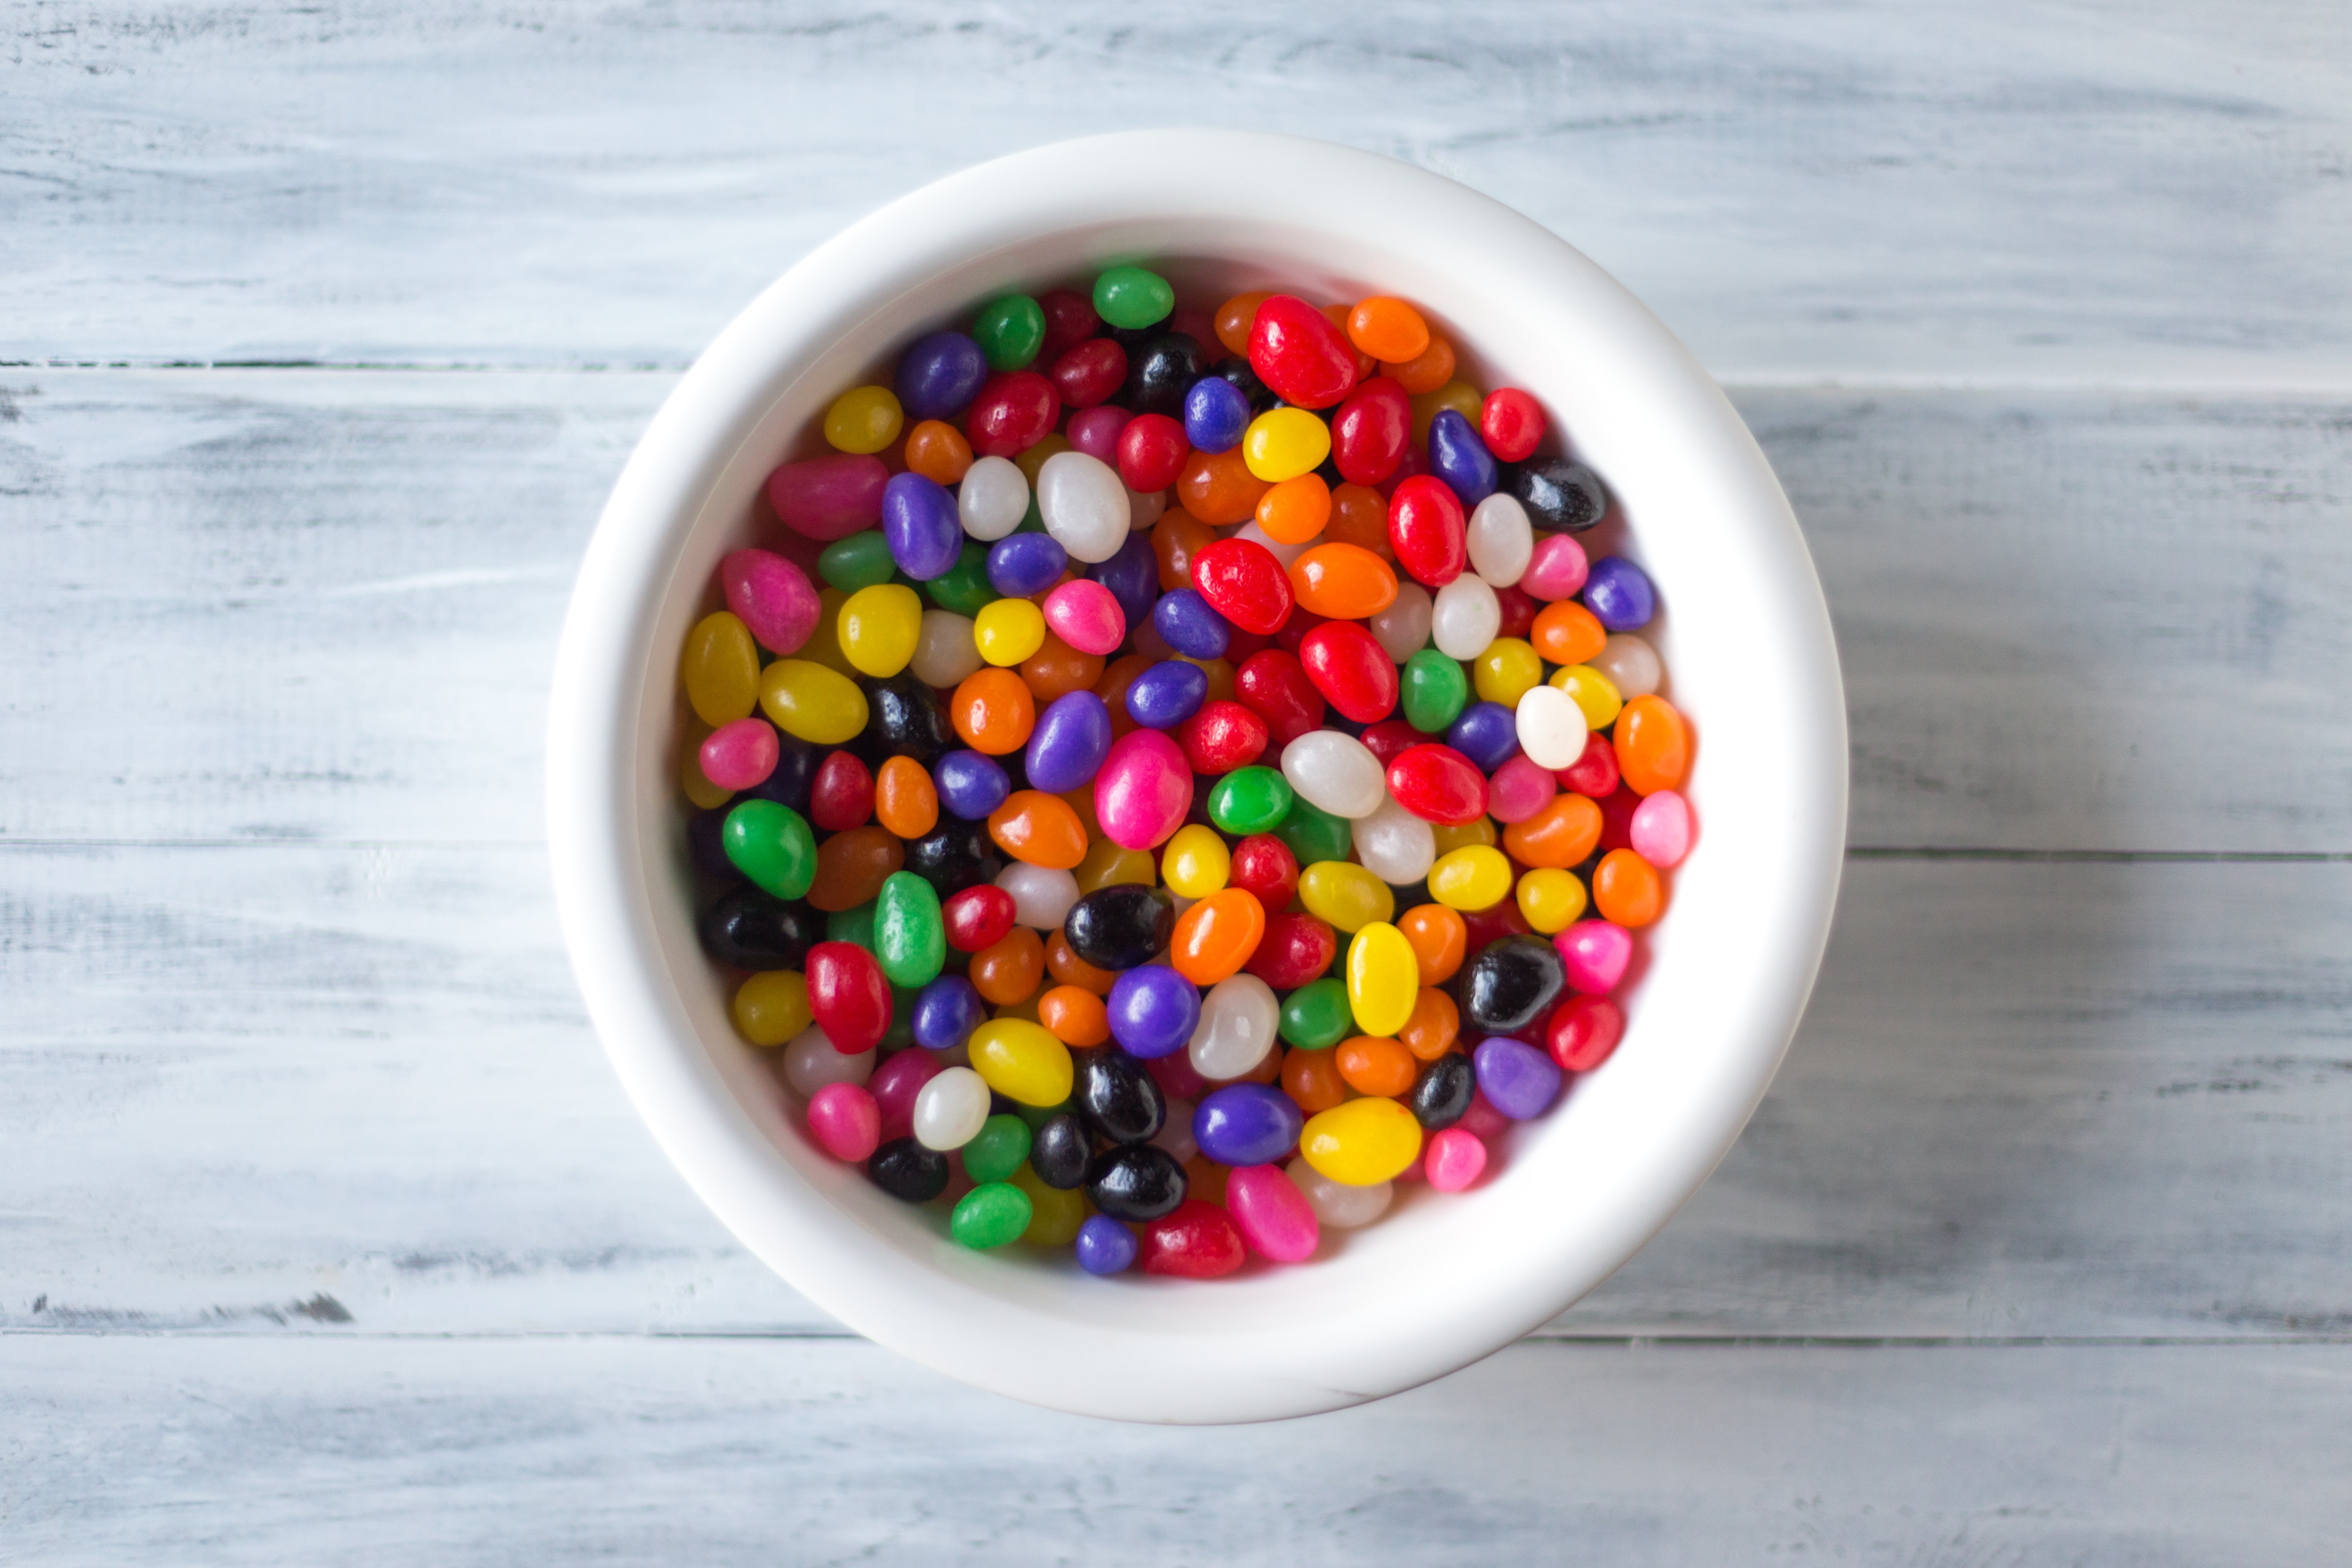 assorted flavors of jelly beans